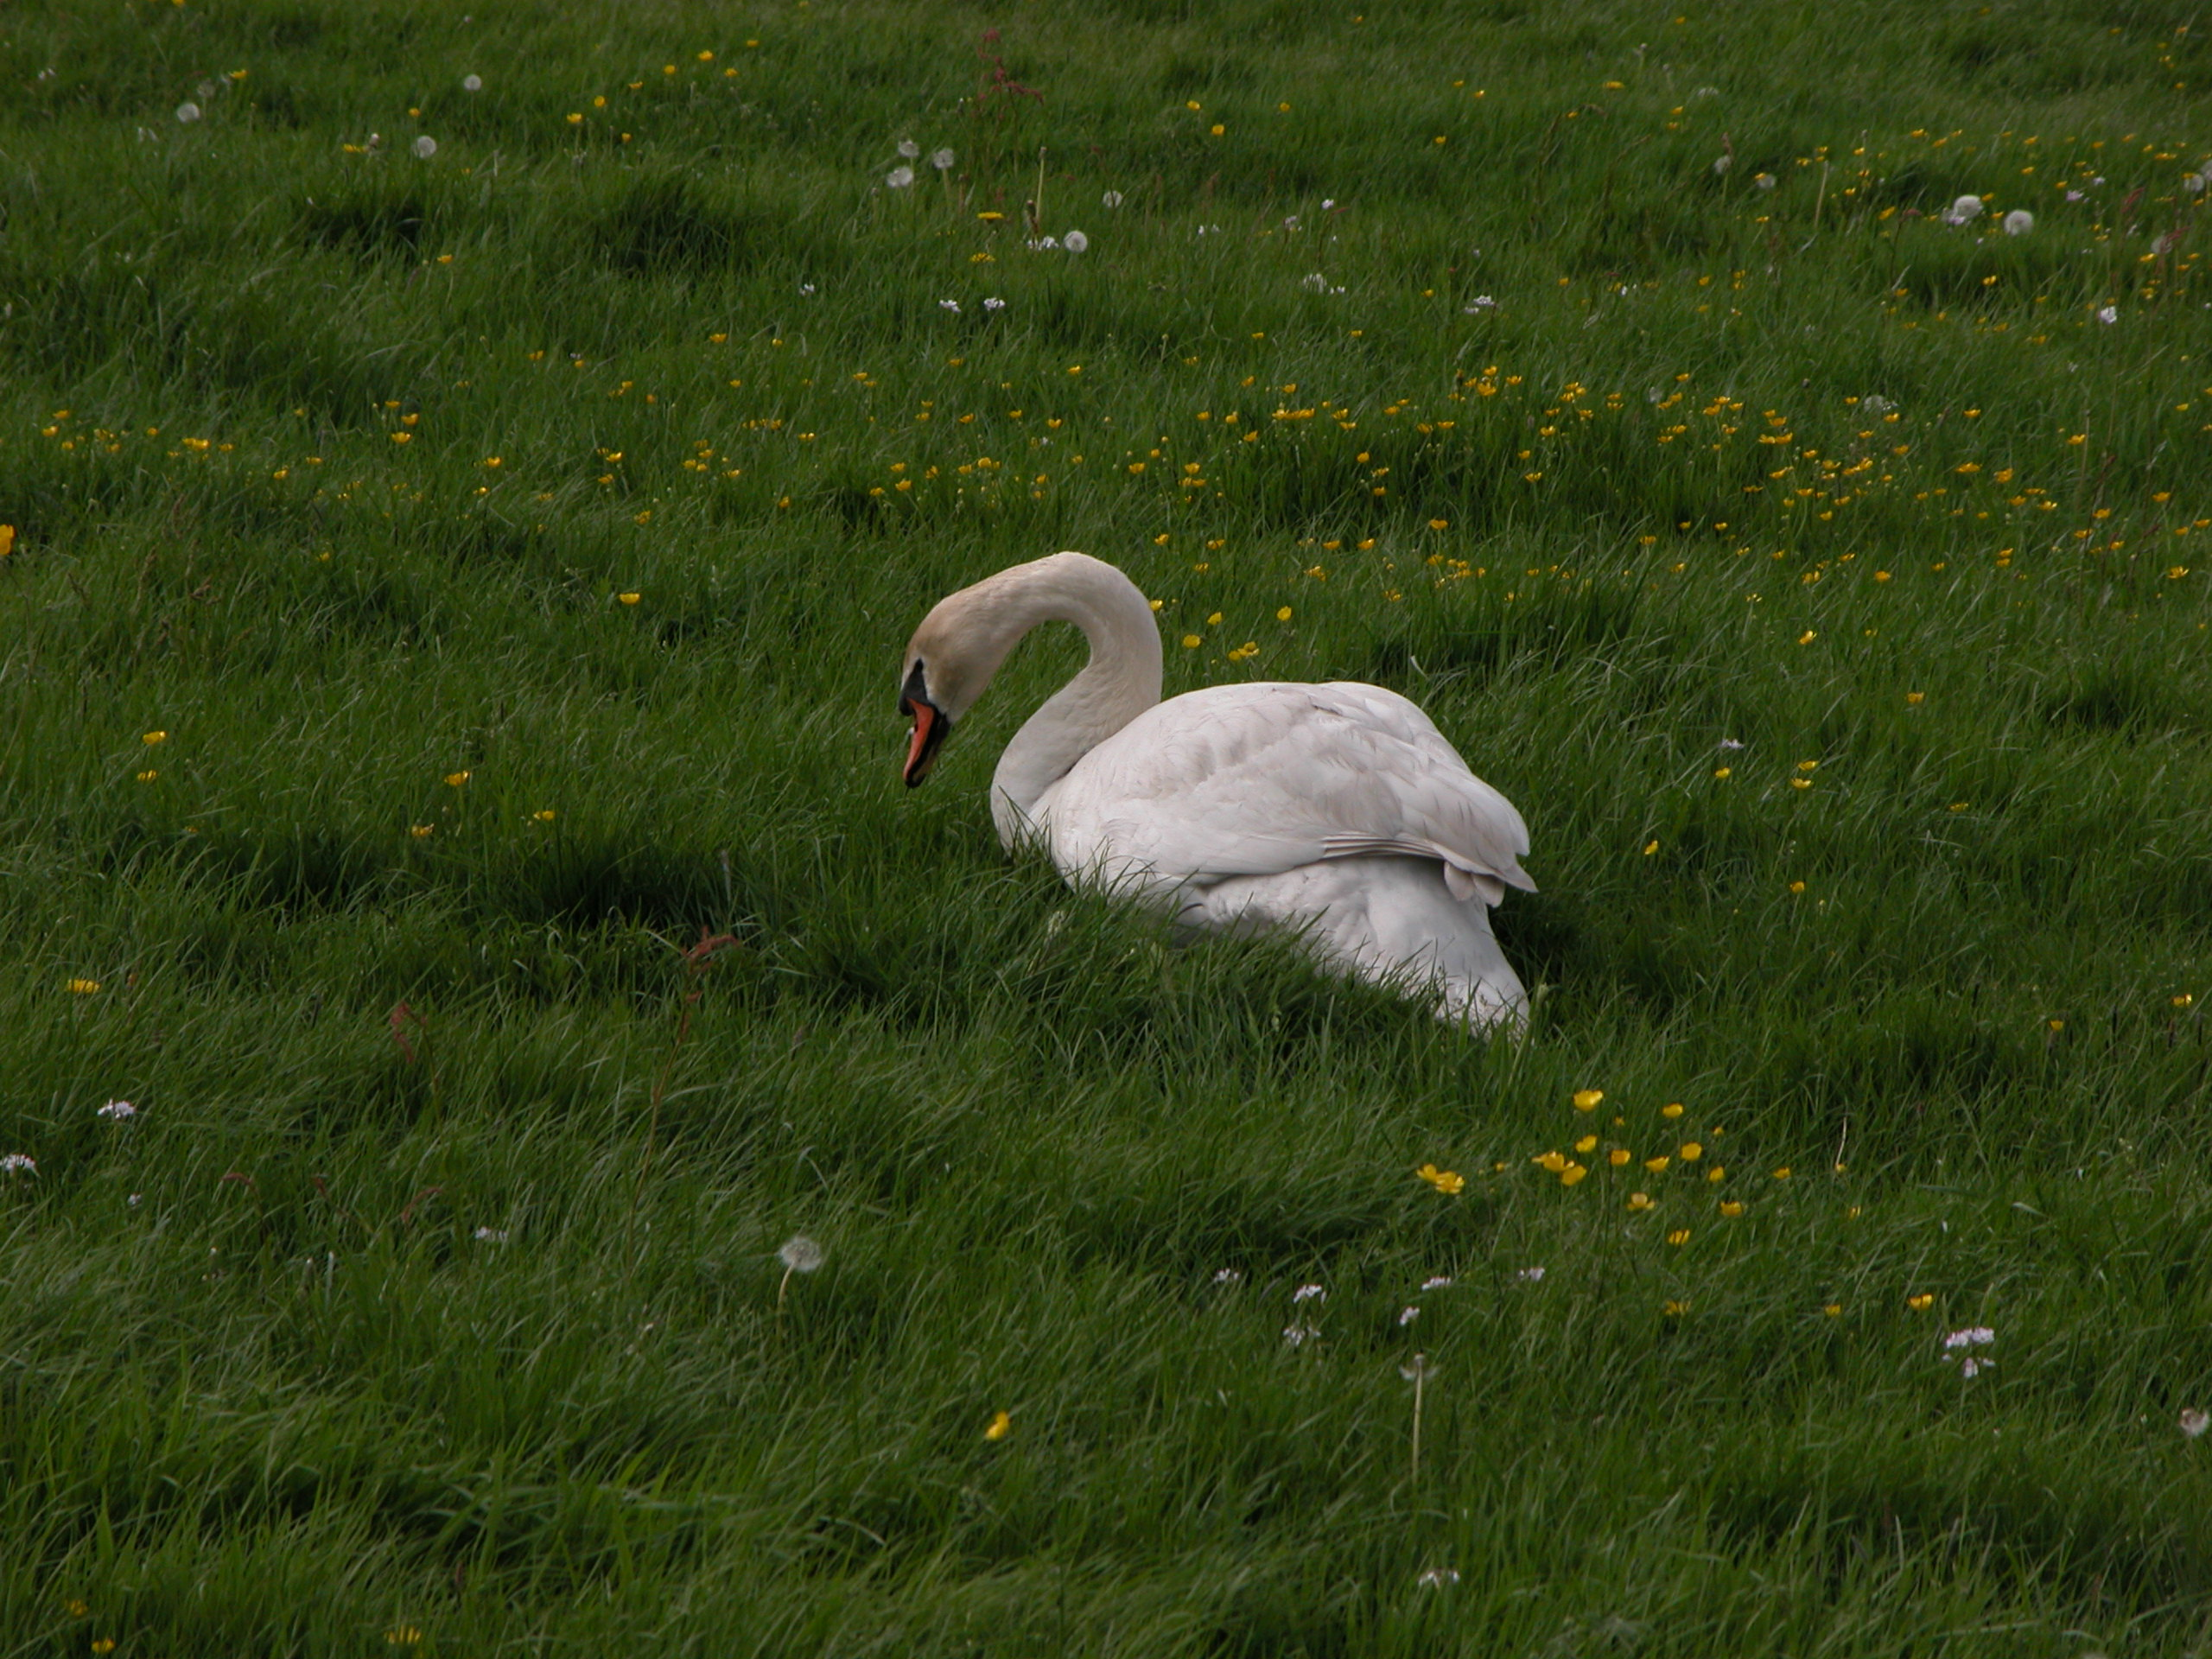 swan white feathers long neck waterfowl bird sitting in a field